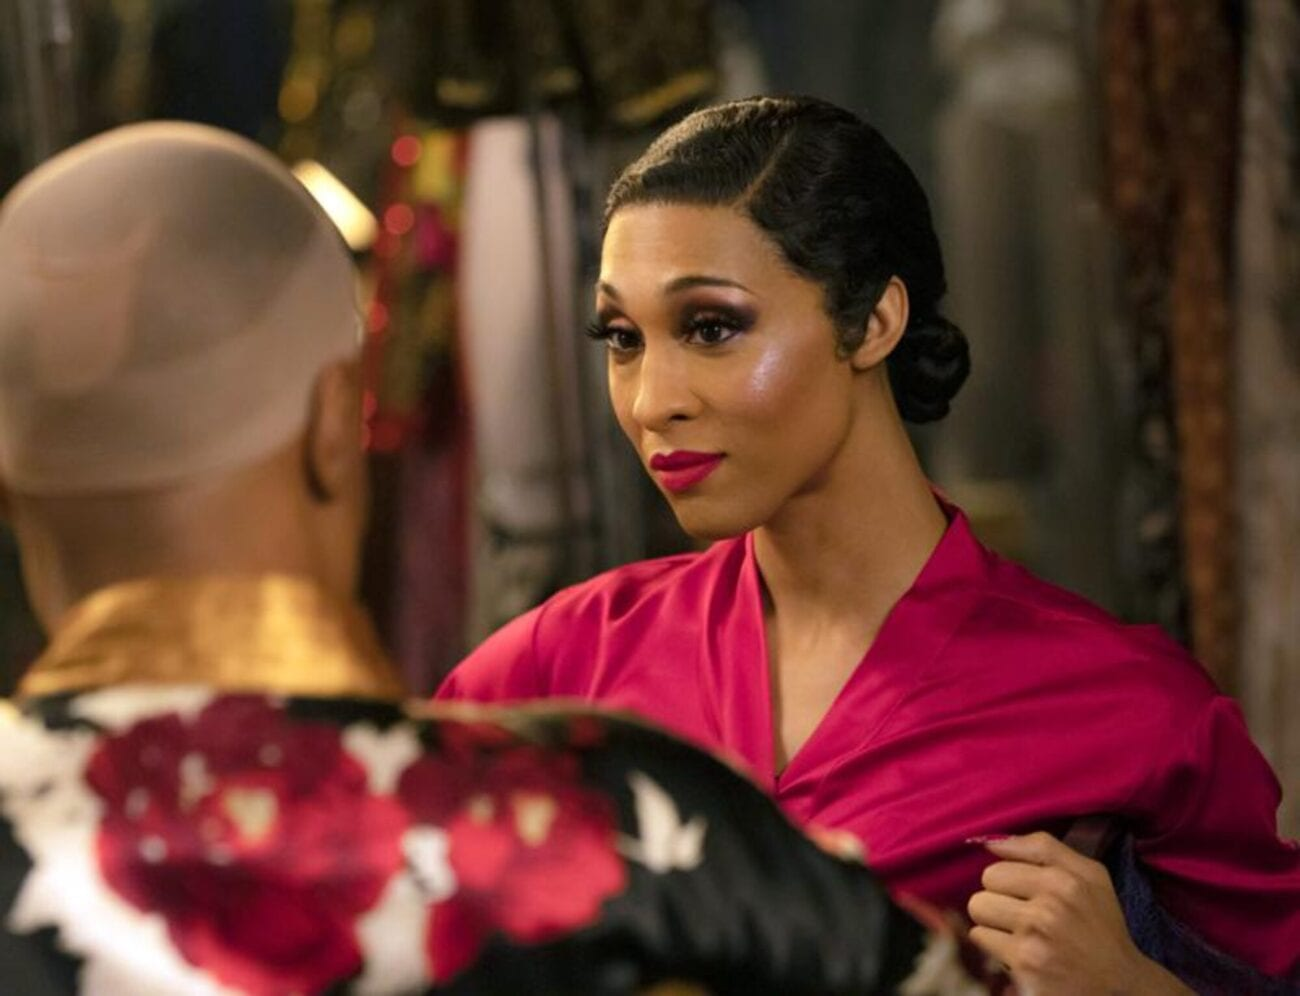 Mj Rodriguez is officially becoming a trailblazer for transgender women everywhere. Discover what her Emmy nomination means for the LGBTQ community.